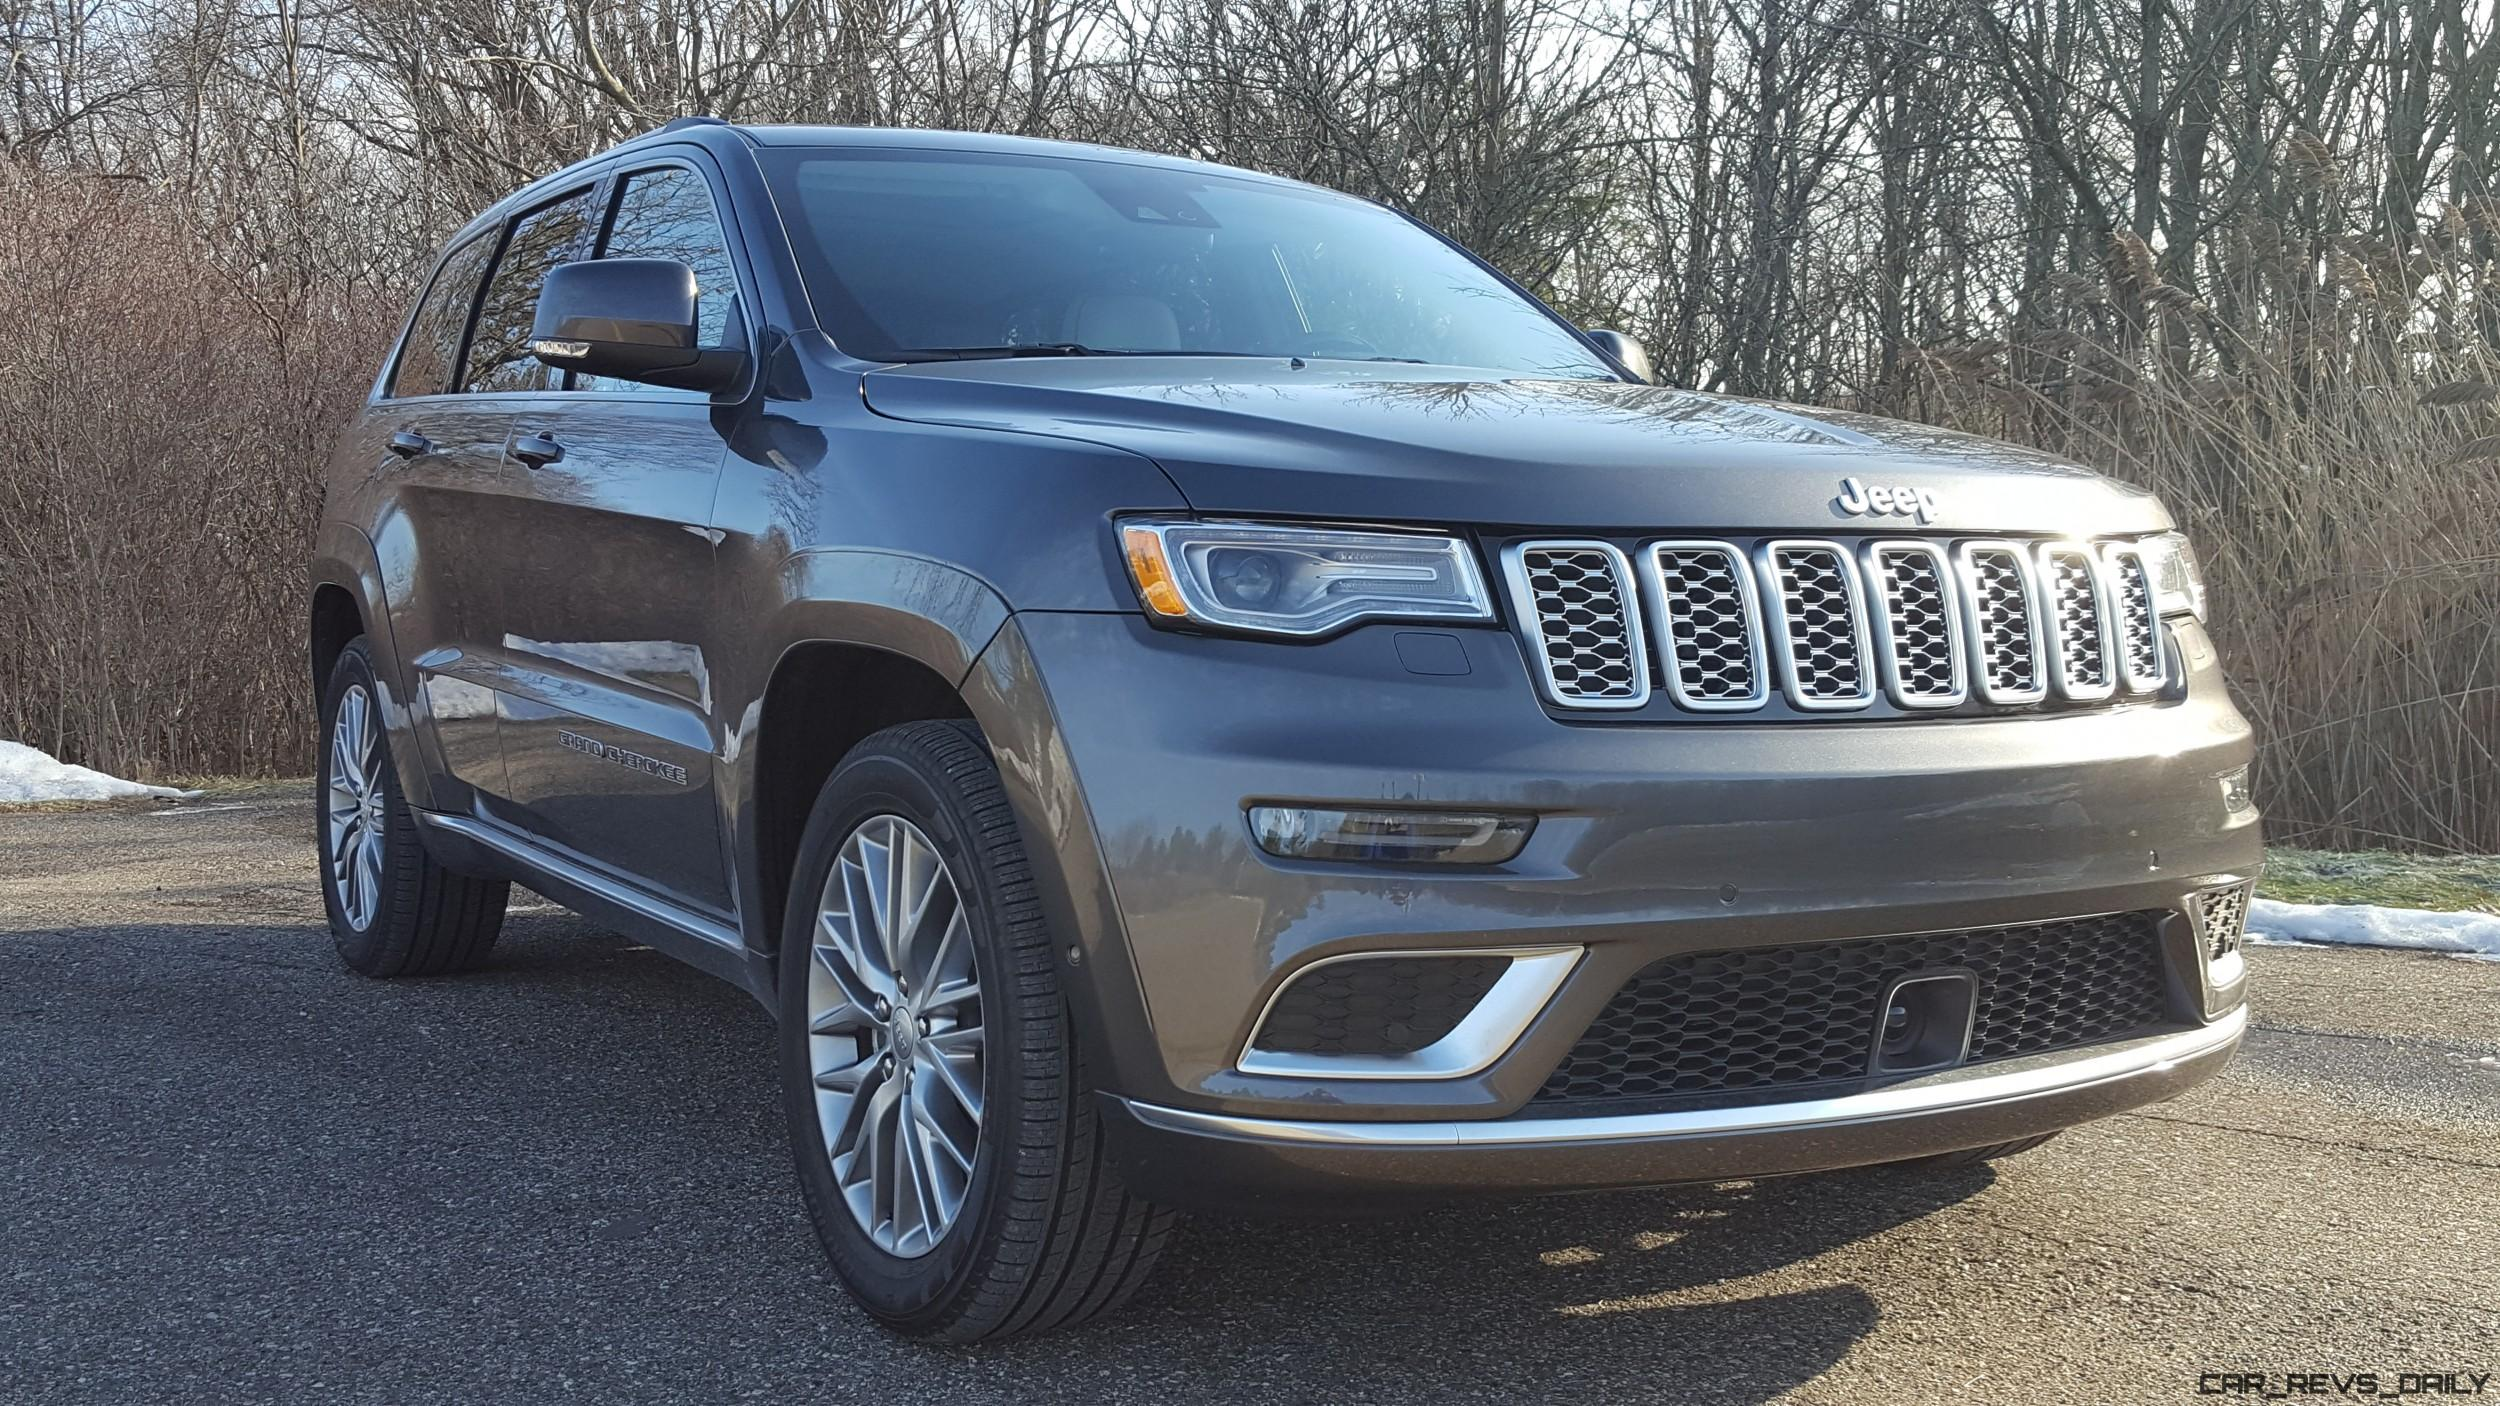 2017 jeep grand cherokee summit road test review by. Black Bedroom Furniture Sets. Home Design Ideas